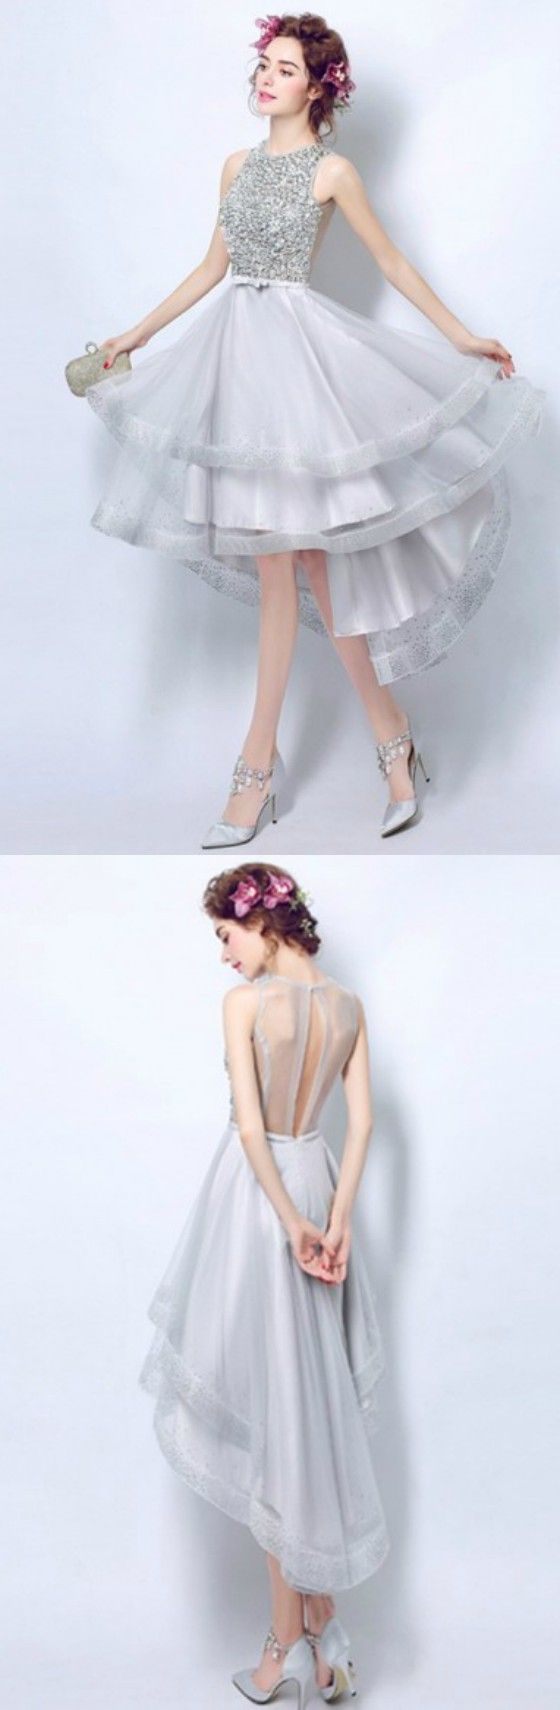 Elegant A-line High Neck High Low Tulle Formal Dress Homecoming Dress Prom Dress With Sequins